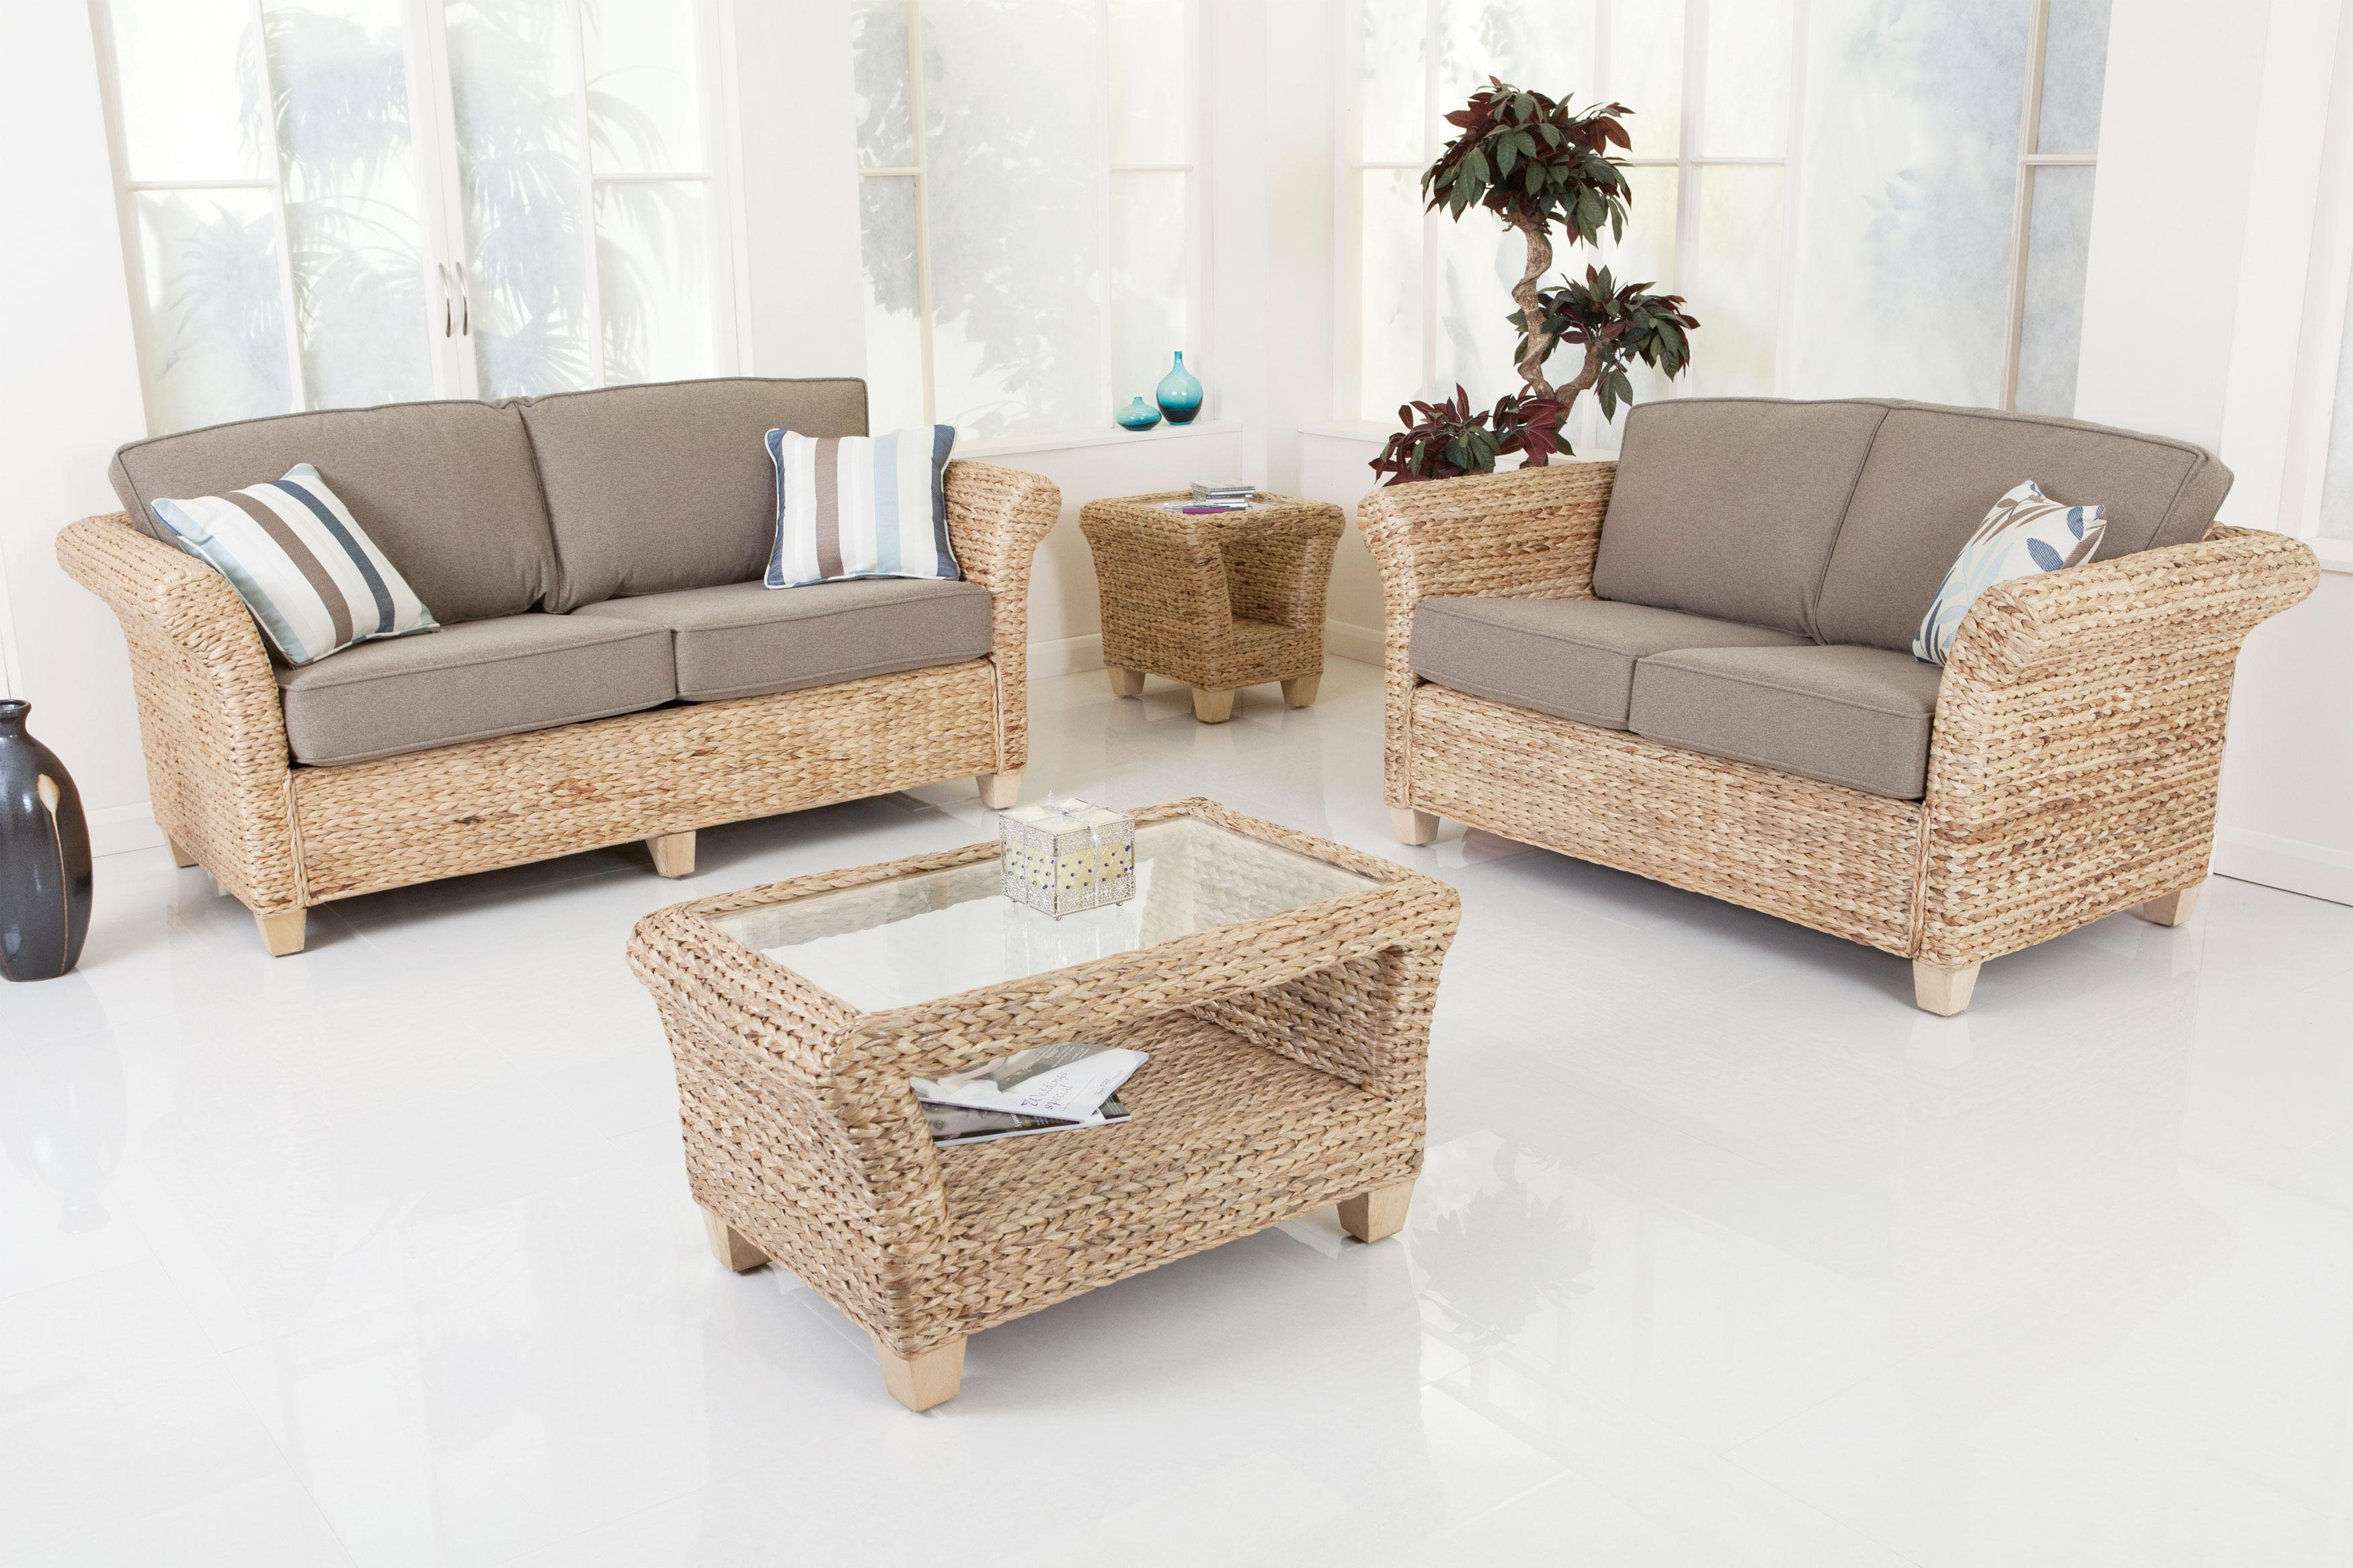 Welcome To Nature Cane And Wood Furniture Works | Cane Furniture Throughout Cane Sofas (View 2 of 20)